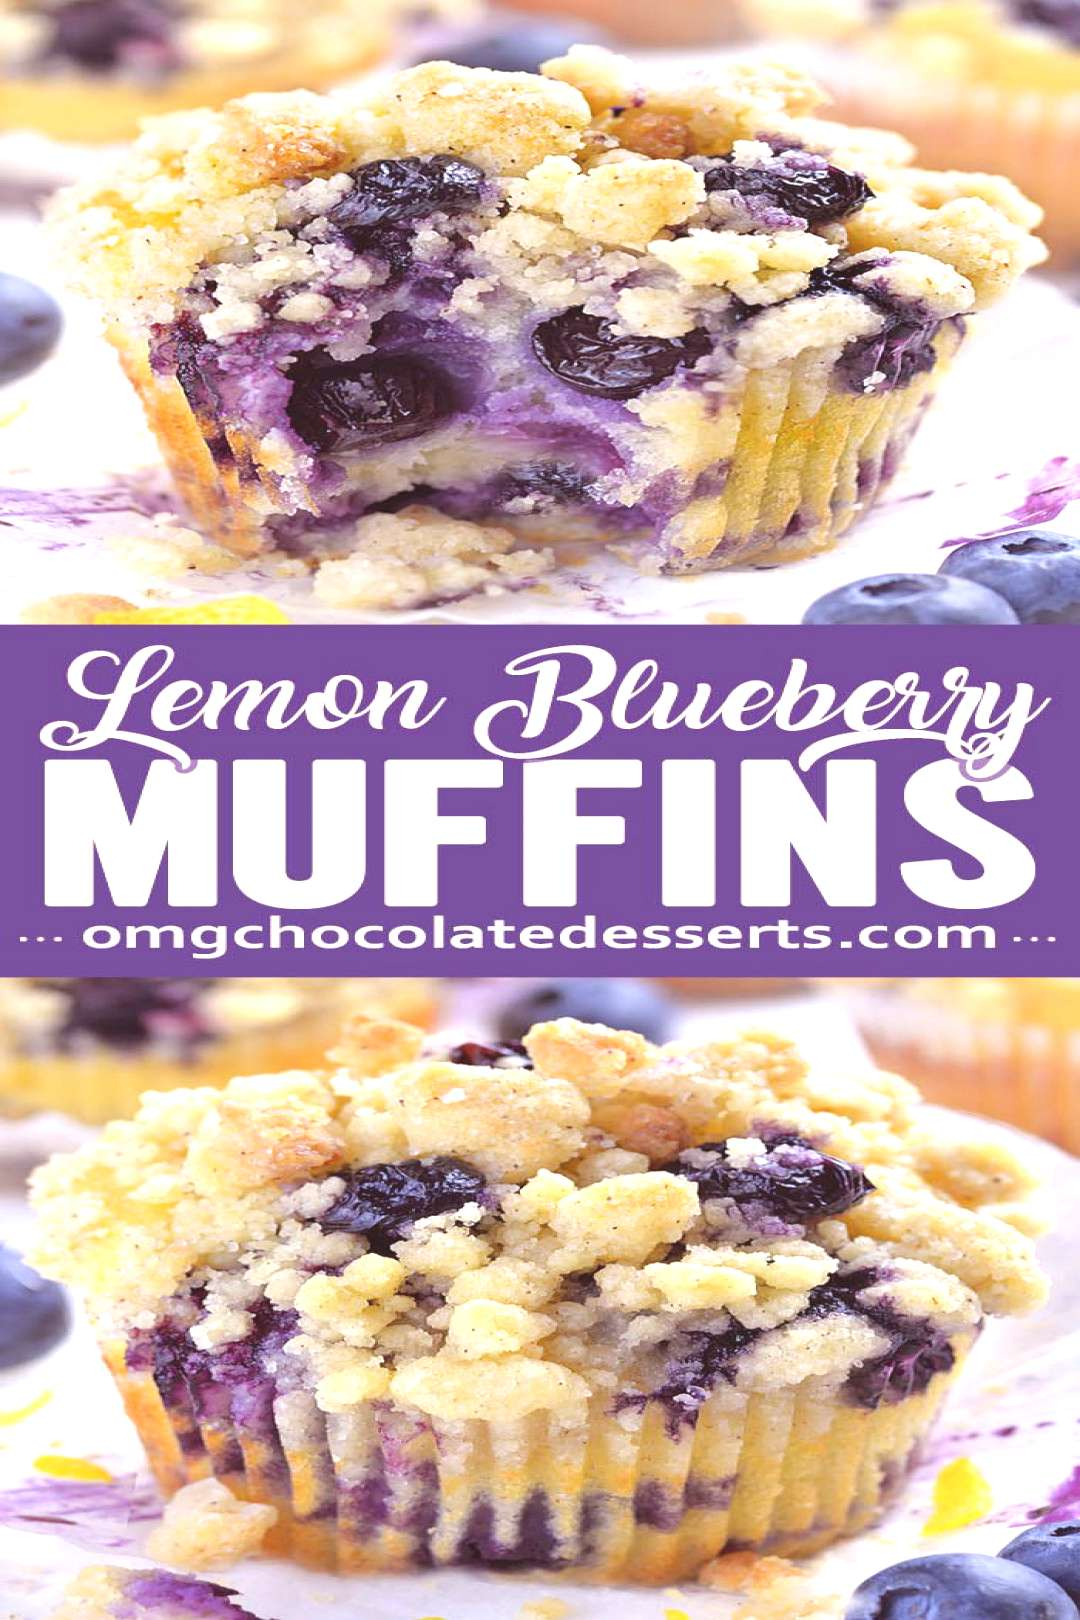 Blueberry Lemon Muffins are a delicious breakfast choice on a spring or summer day. The bright tang